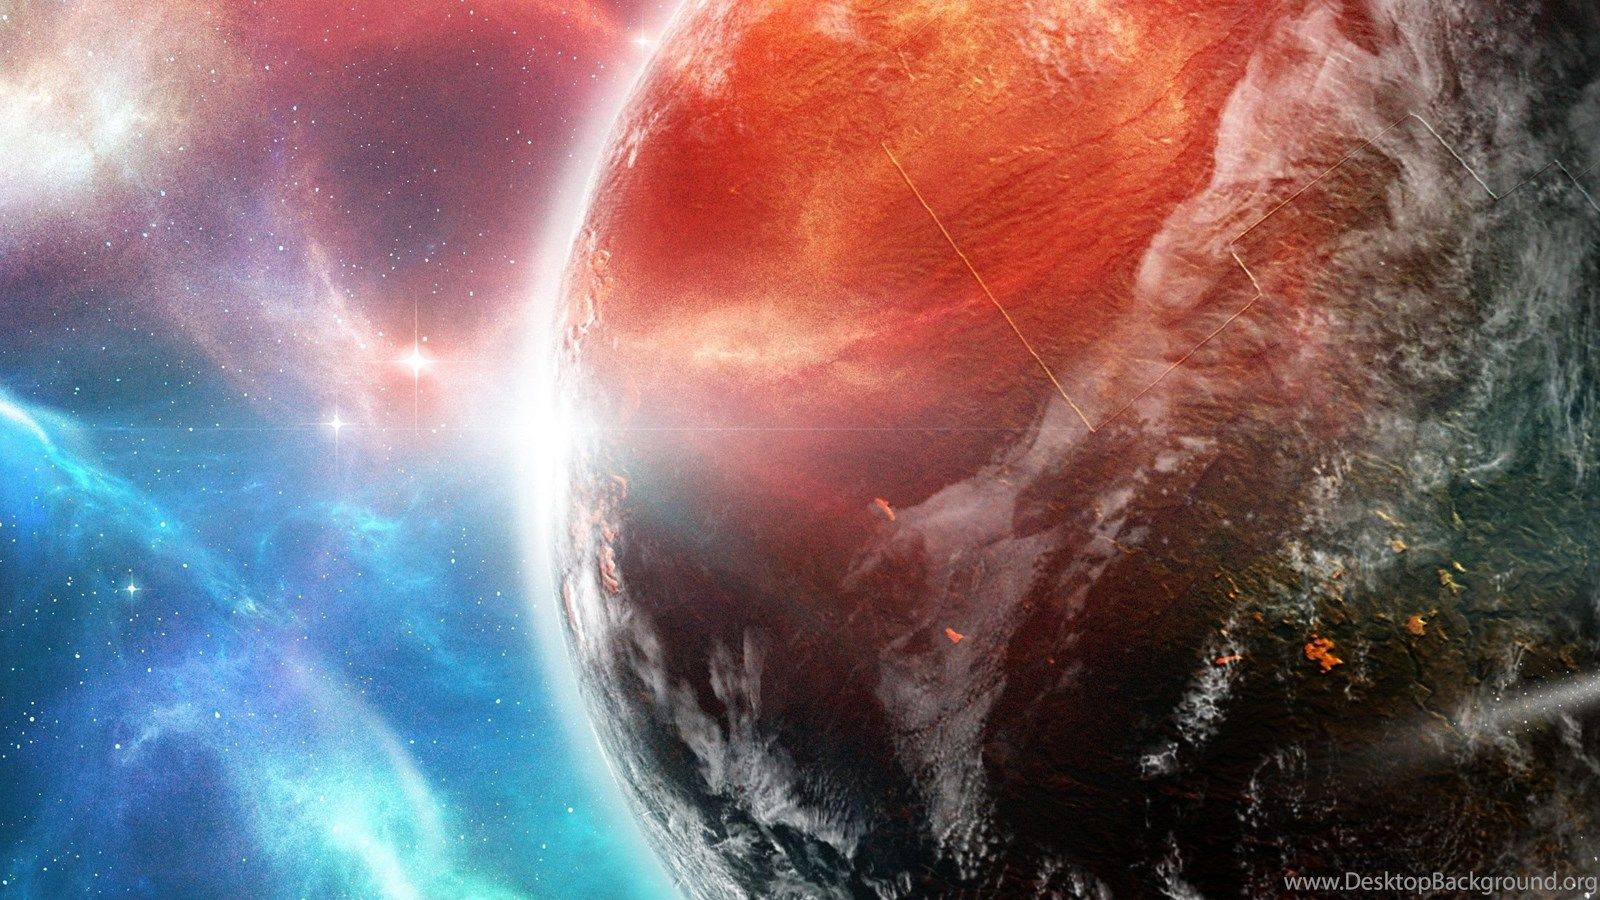 1600x900 Deviantart Artwork Dual Screen Outer Space Planets Spaceships ...